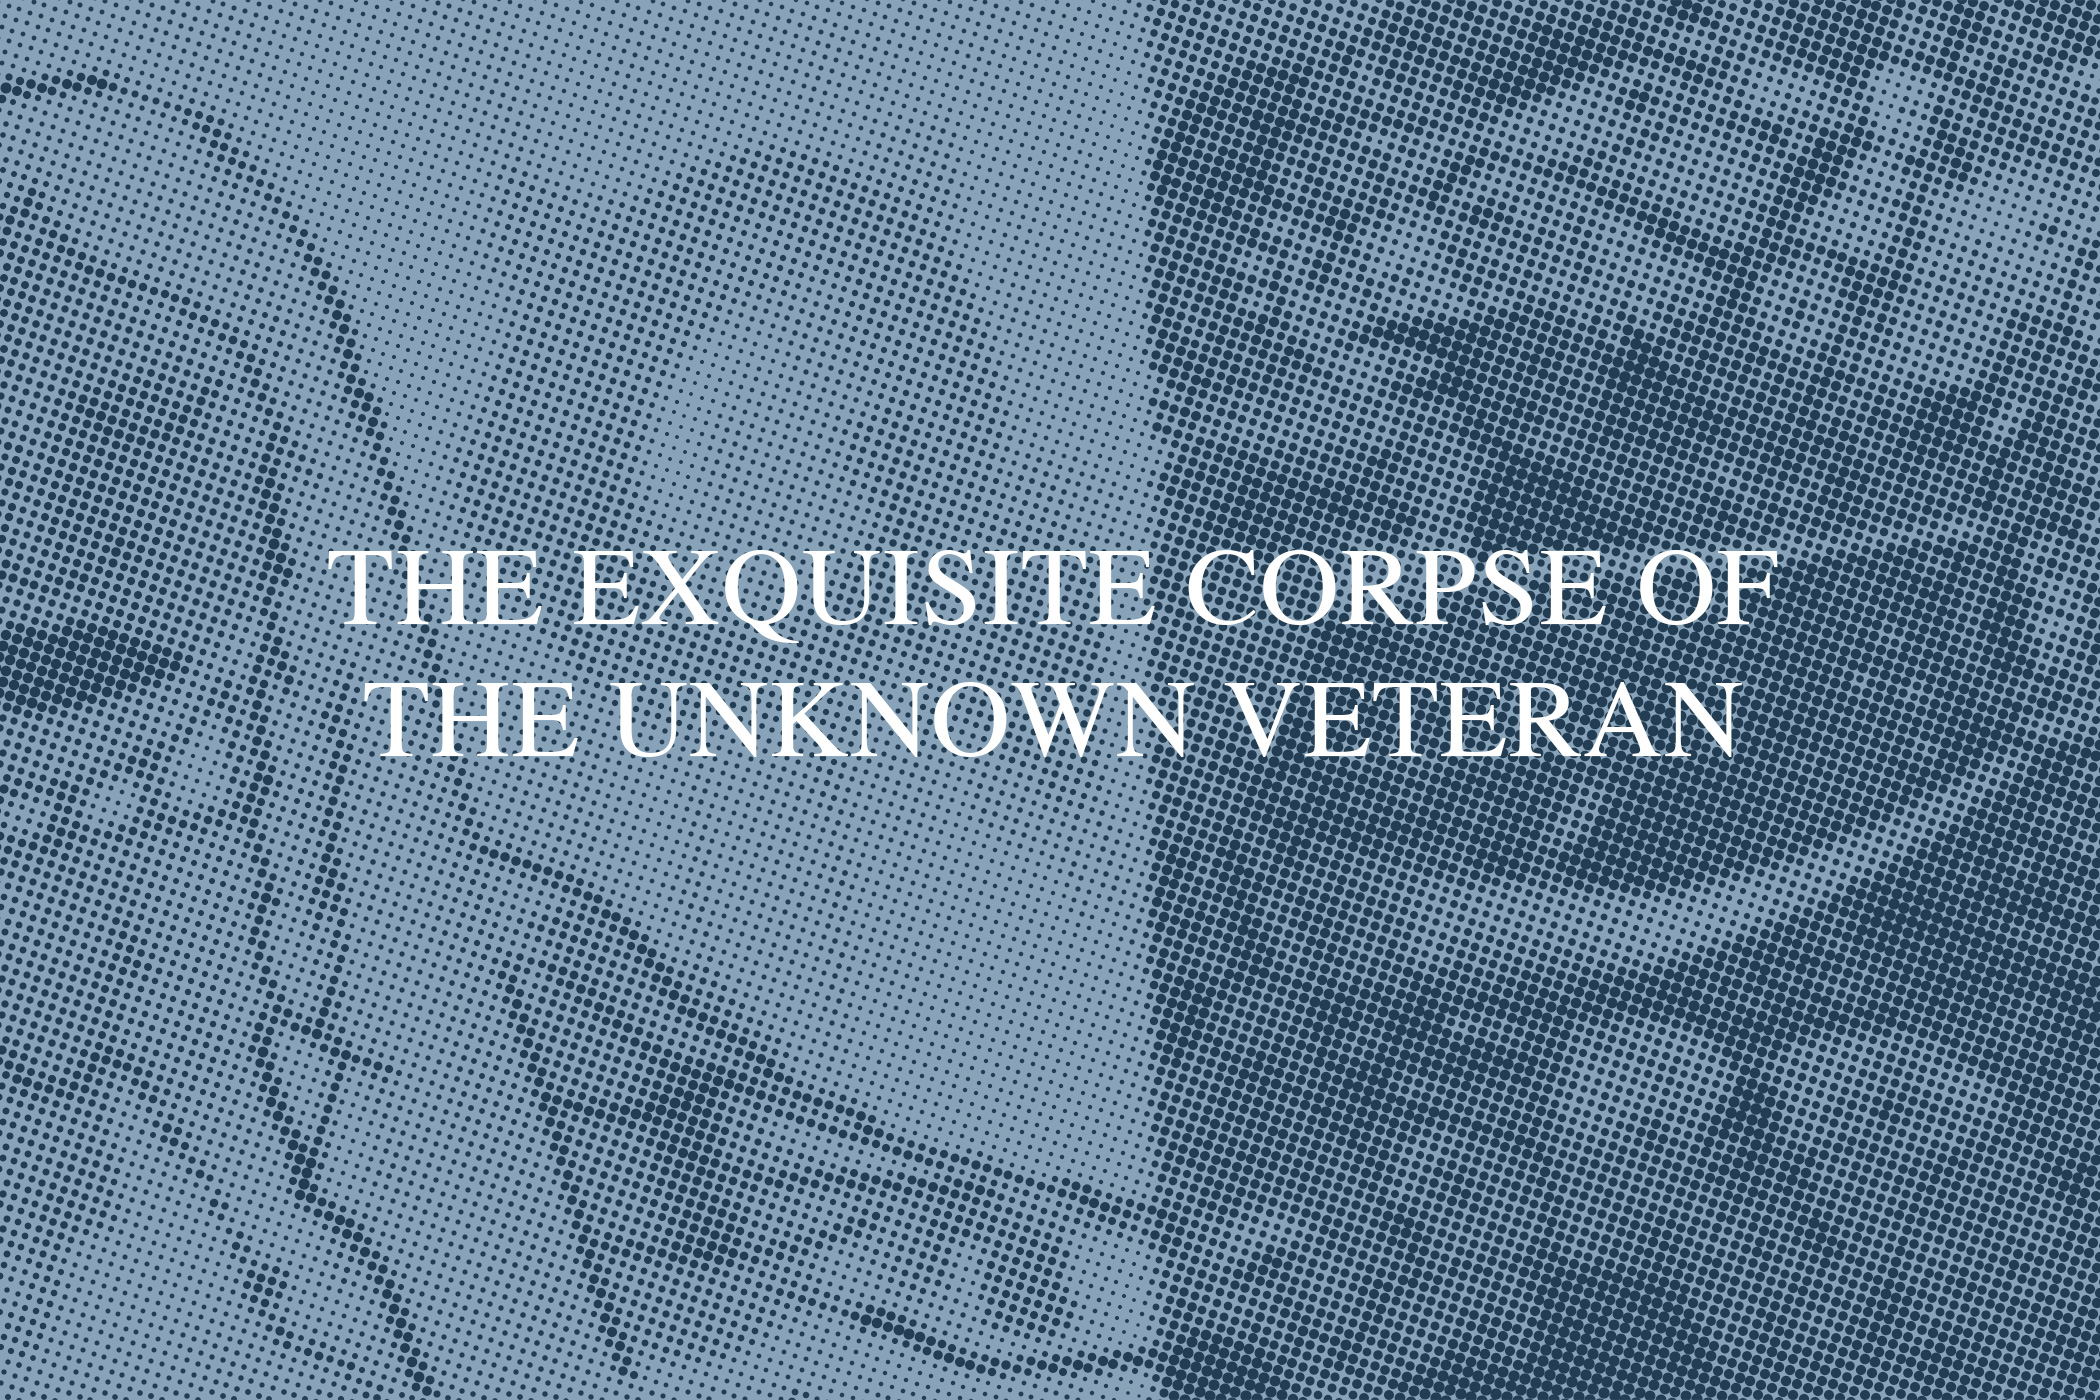 The Exquisite Corpse of the Unknown Veteran